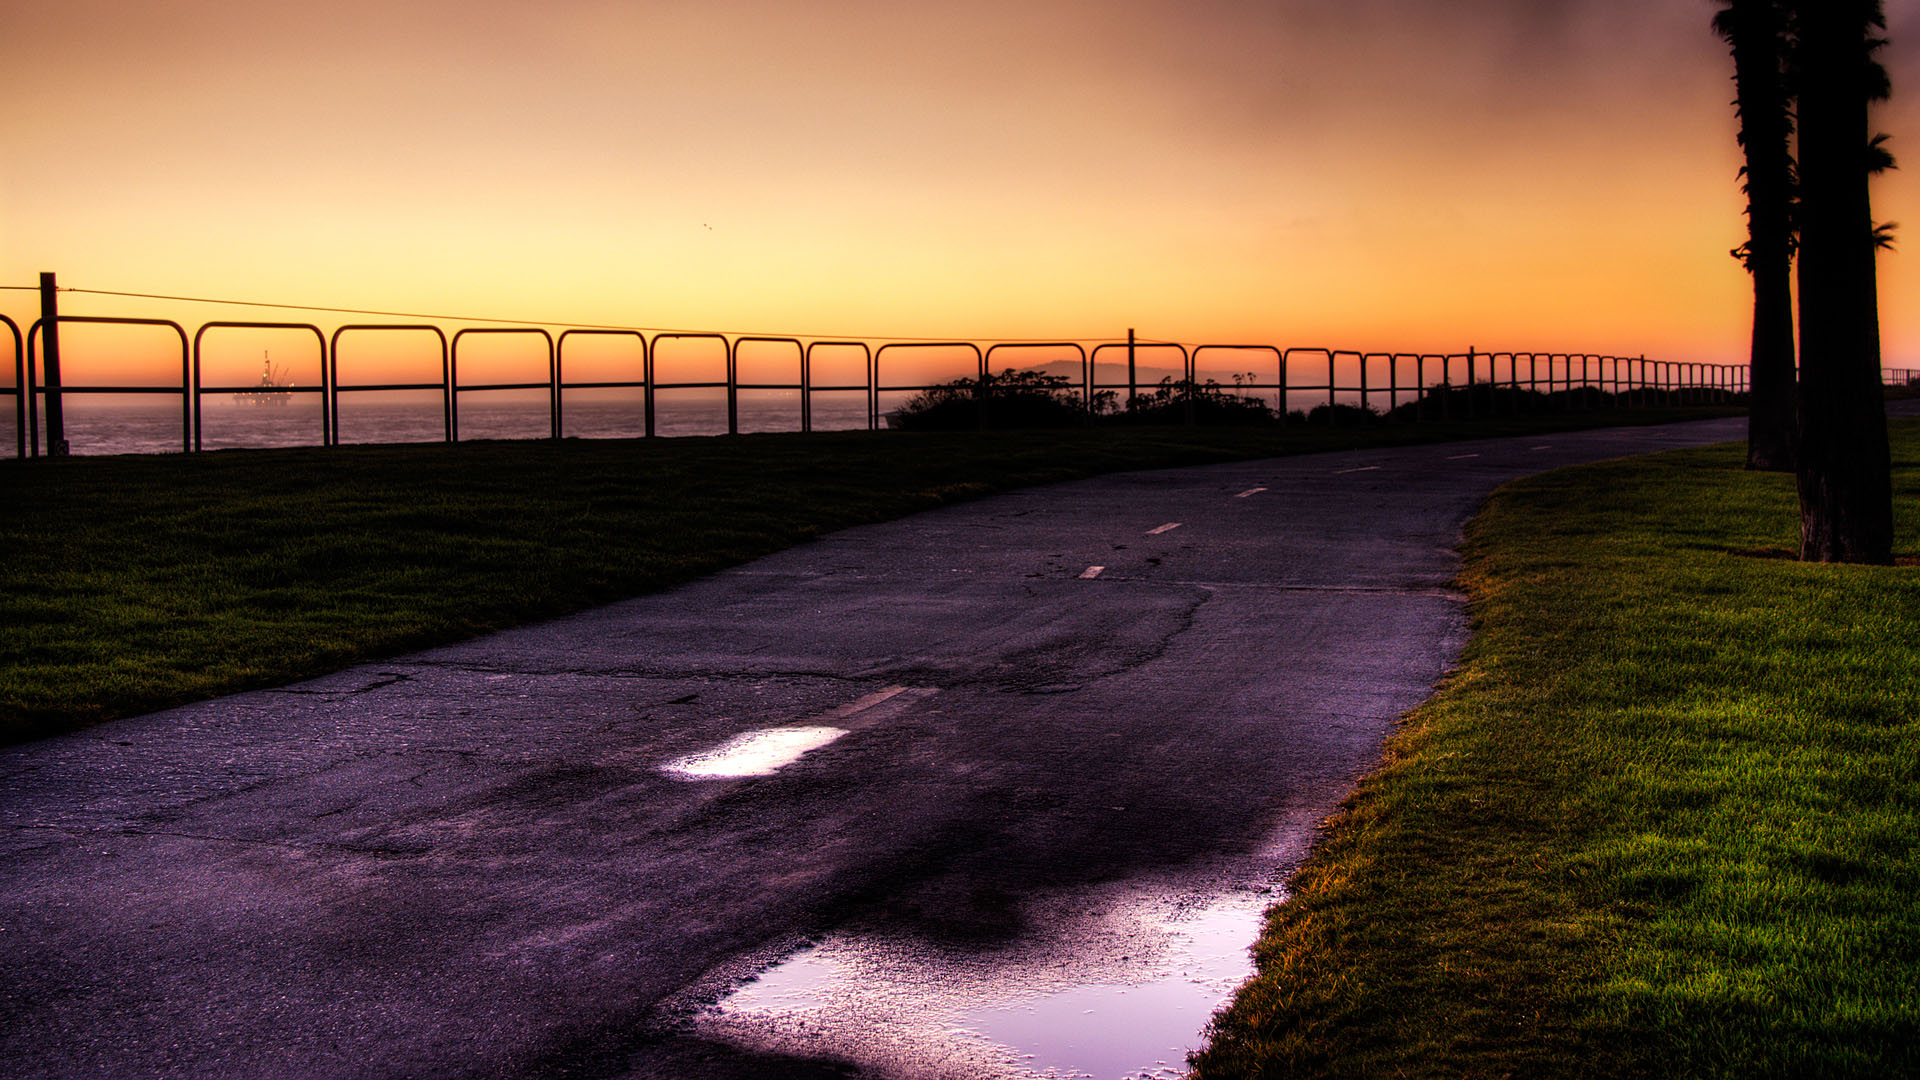 click to free download the wallpaper--Free Download Natural Scenery Picture - A Dark Road, the Setting Sun, Golden Horizon, Typical Dusk Scene 1920X1080 free wallpaper download